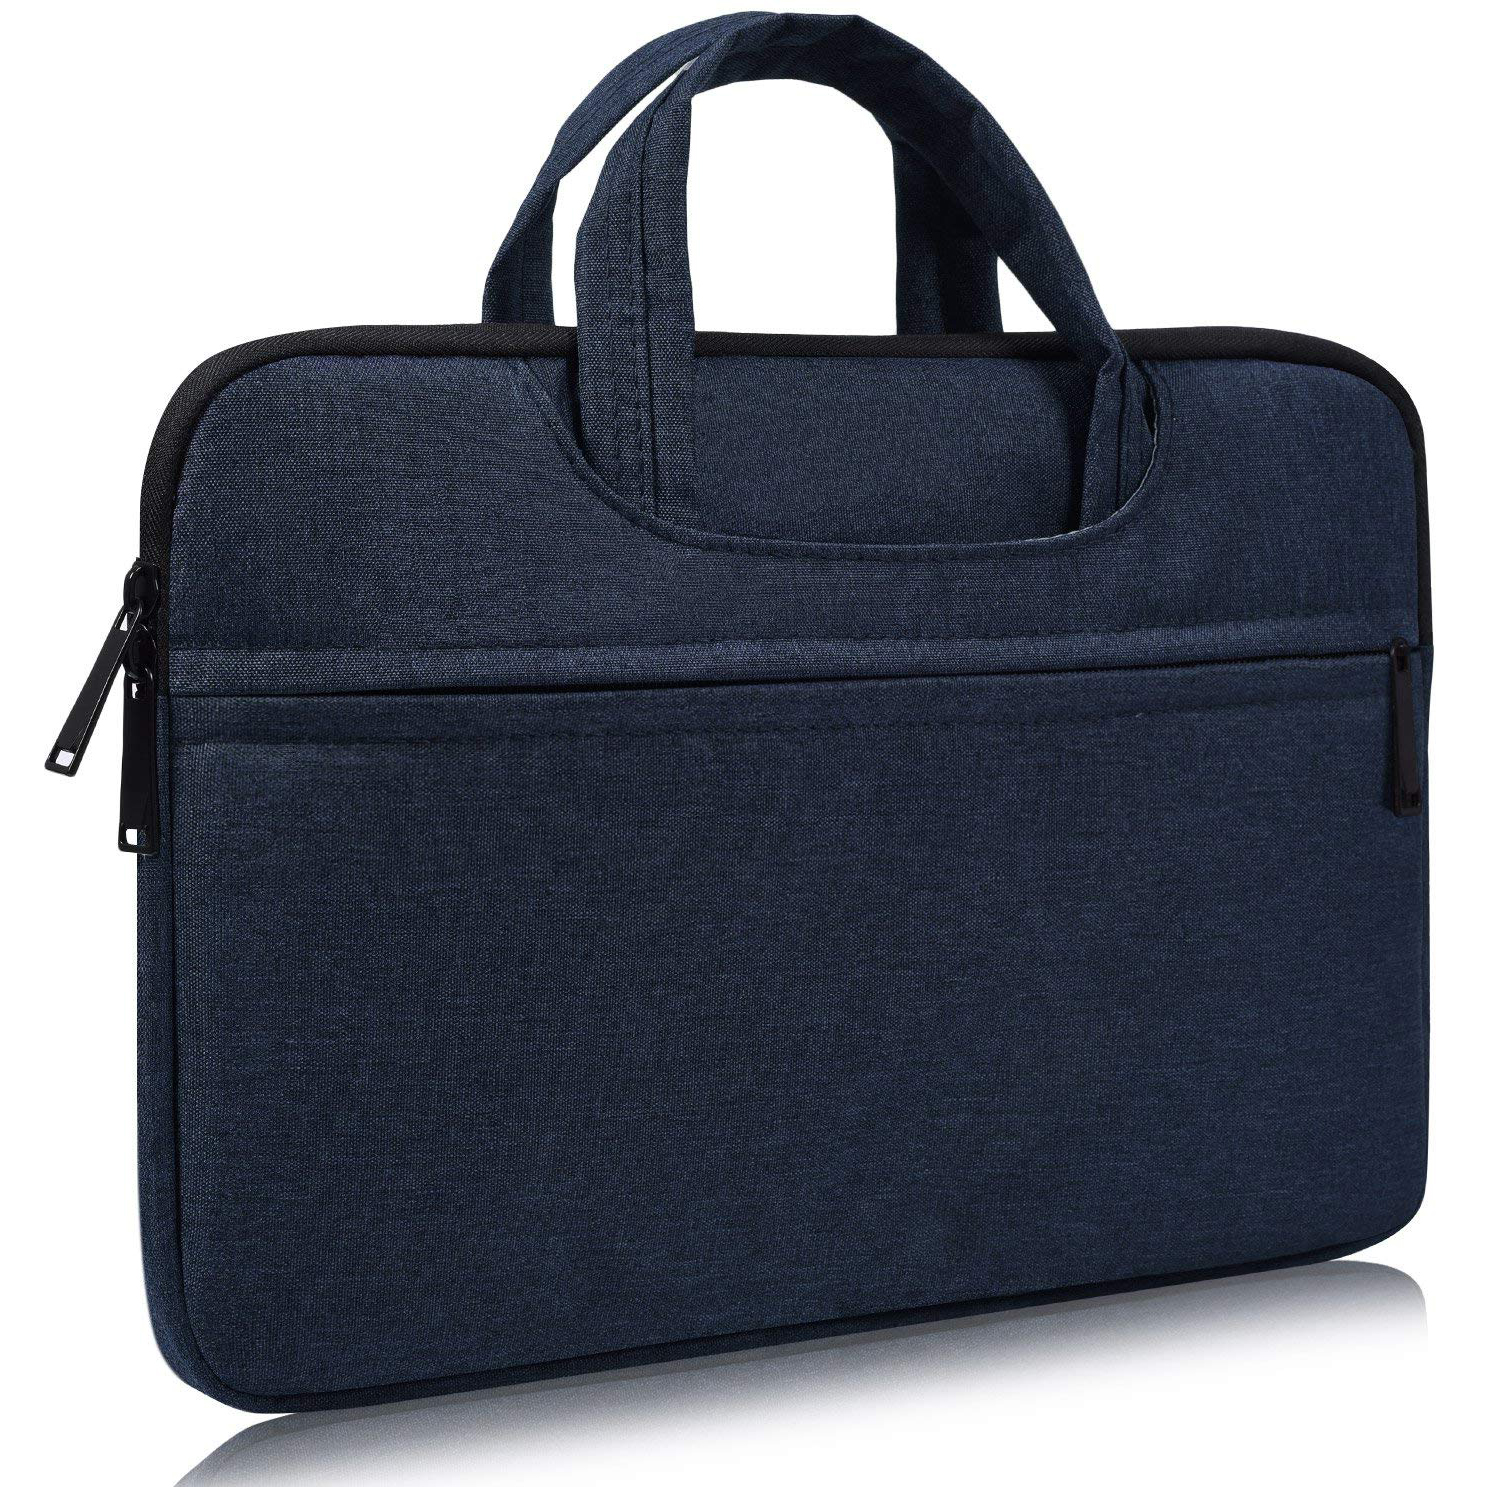 Laptop Bag Sleeve 13 13.3 14 14.1 15 15.4 15.6 Inch Notebook Bag For Macbook Air Pro 13 15 Dell Asus HP Acer Briefcase Handbag-in Laptop Bags & Cases from Computer & Office